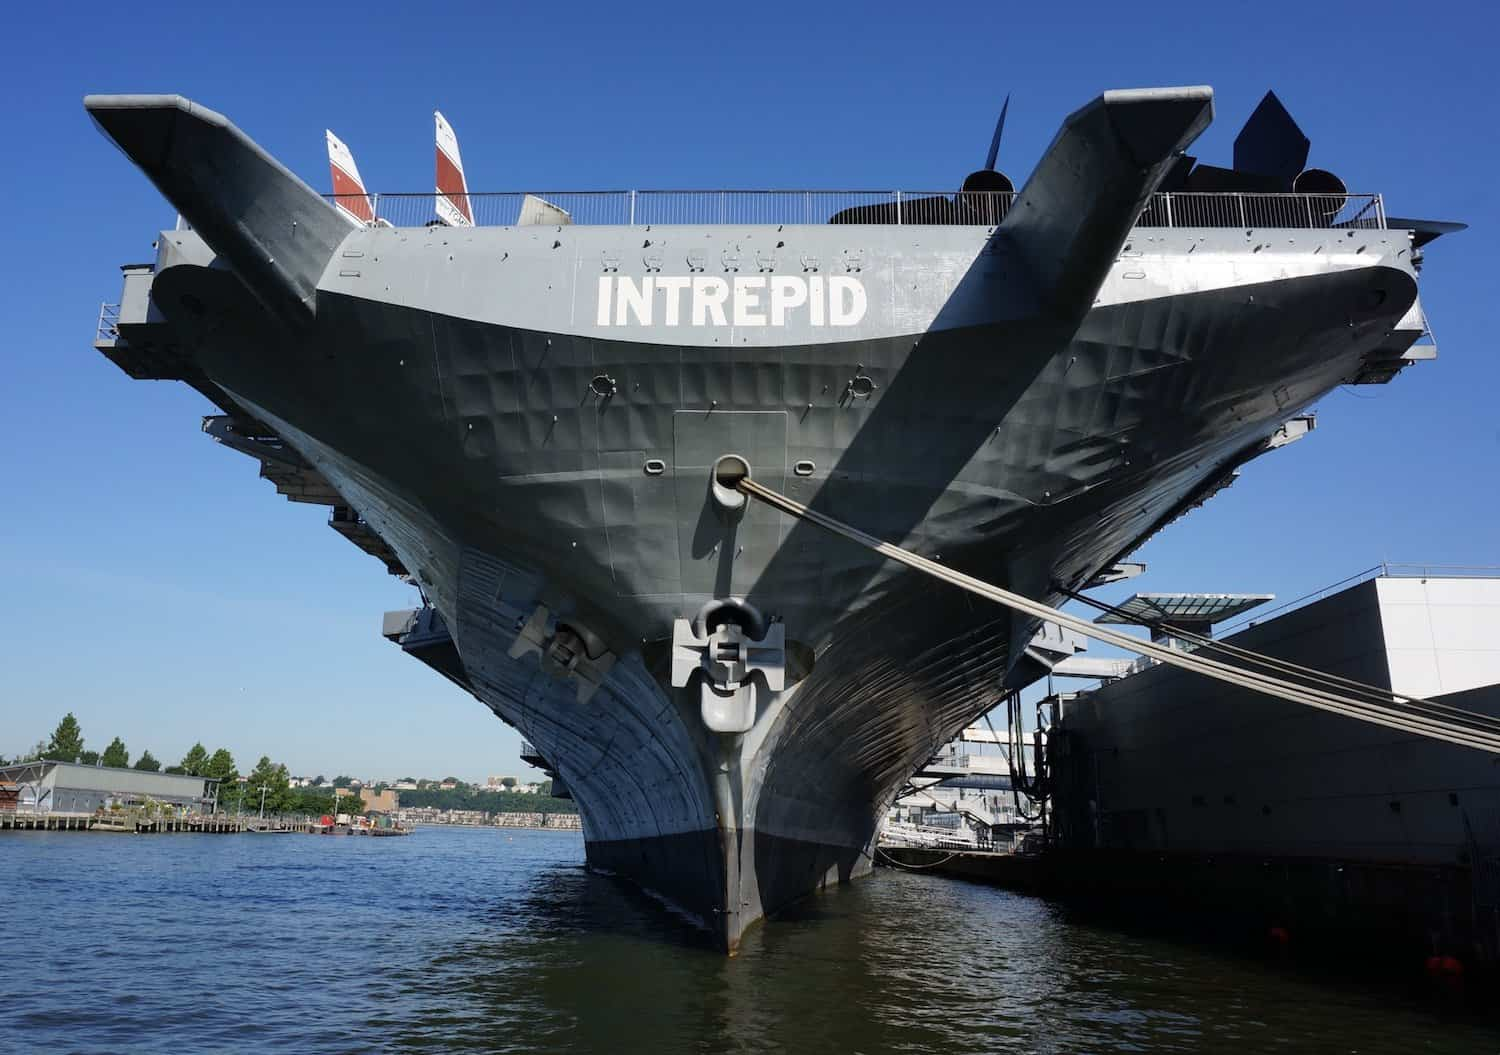 Space Shuttle Enterprise - USS Intrepid